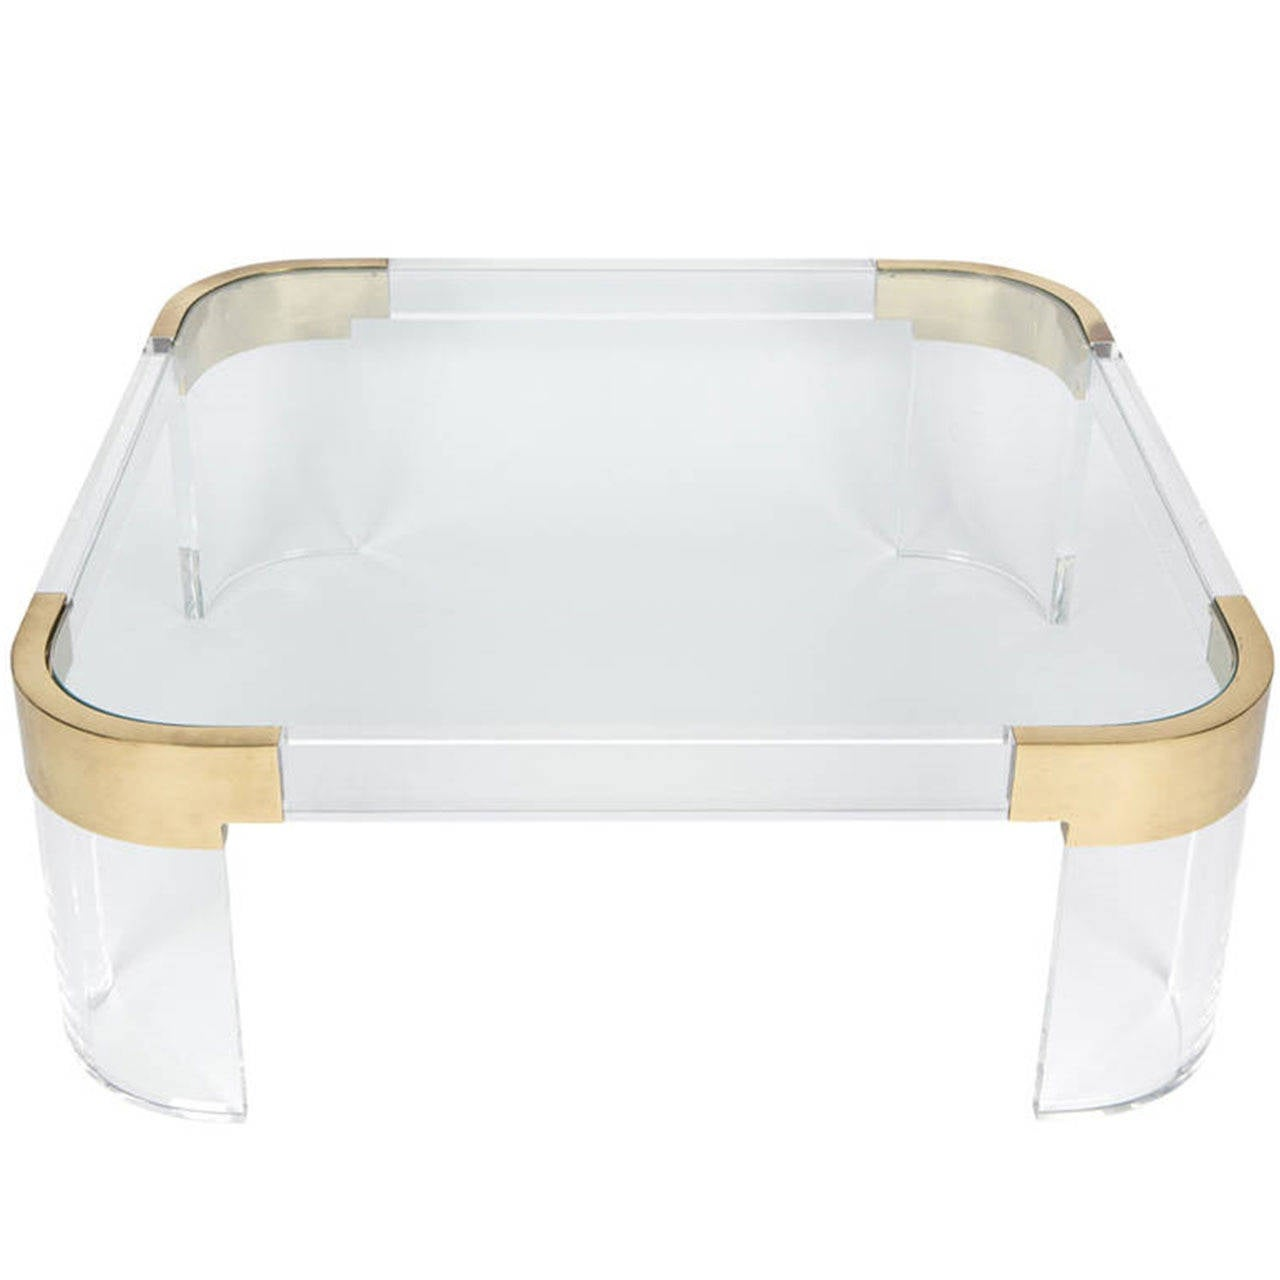 """Charles Hollis Jones Lucite and Solid Brass Coffee Table """"Waterfall Line"""""""